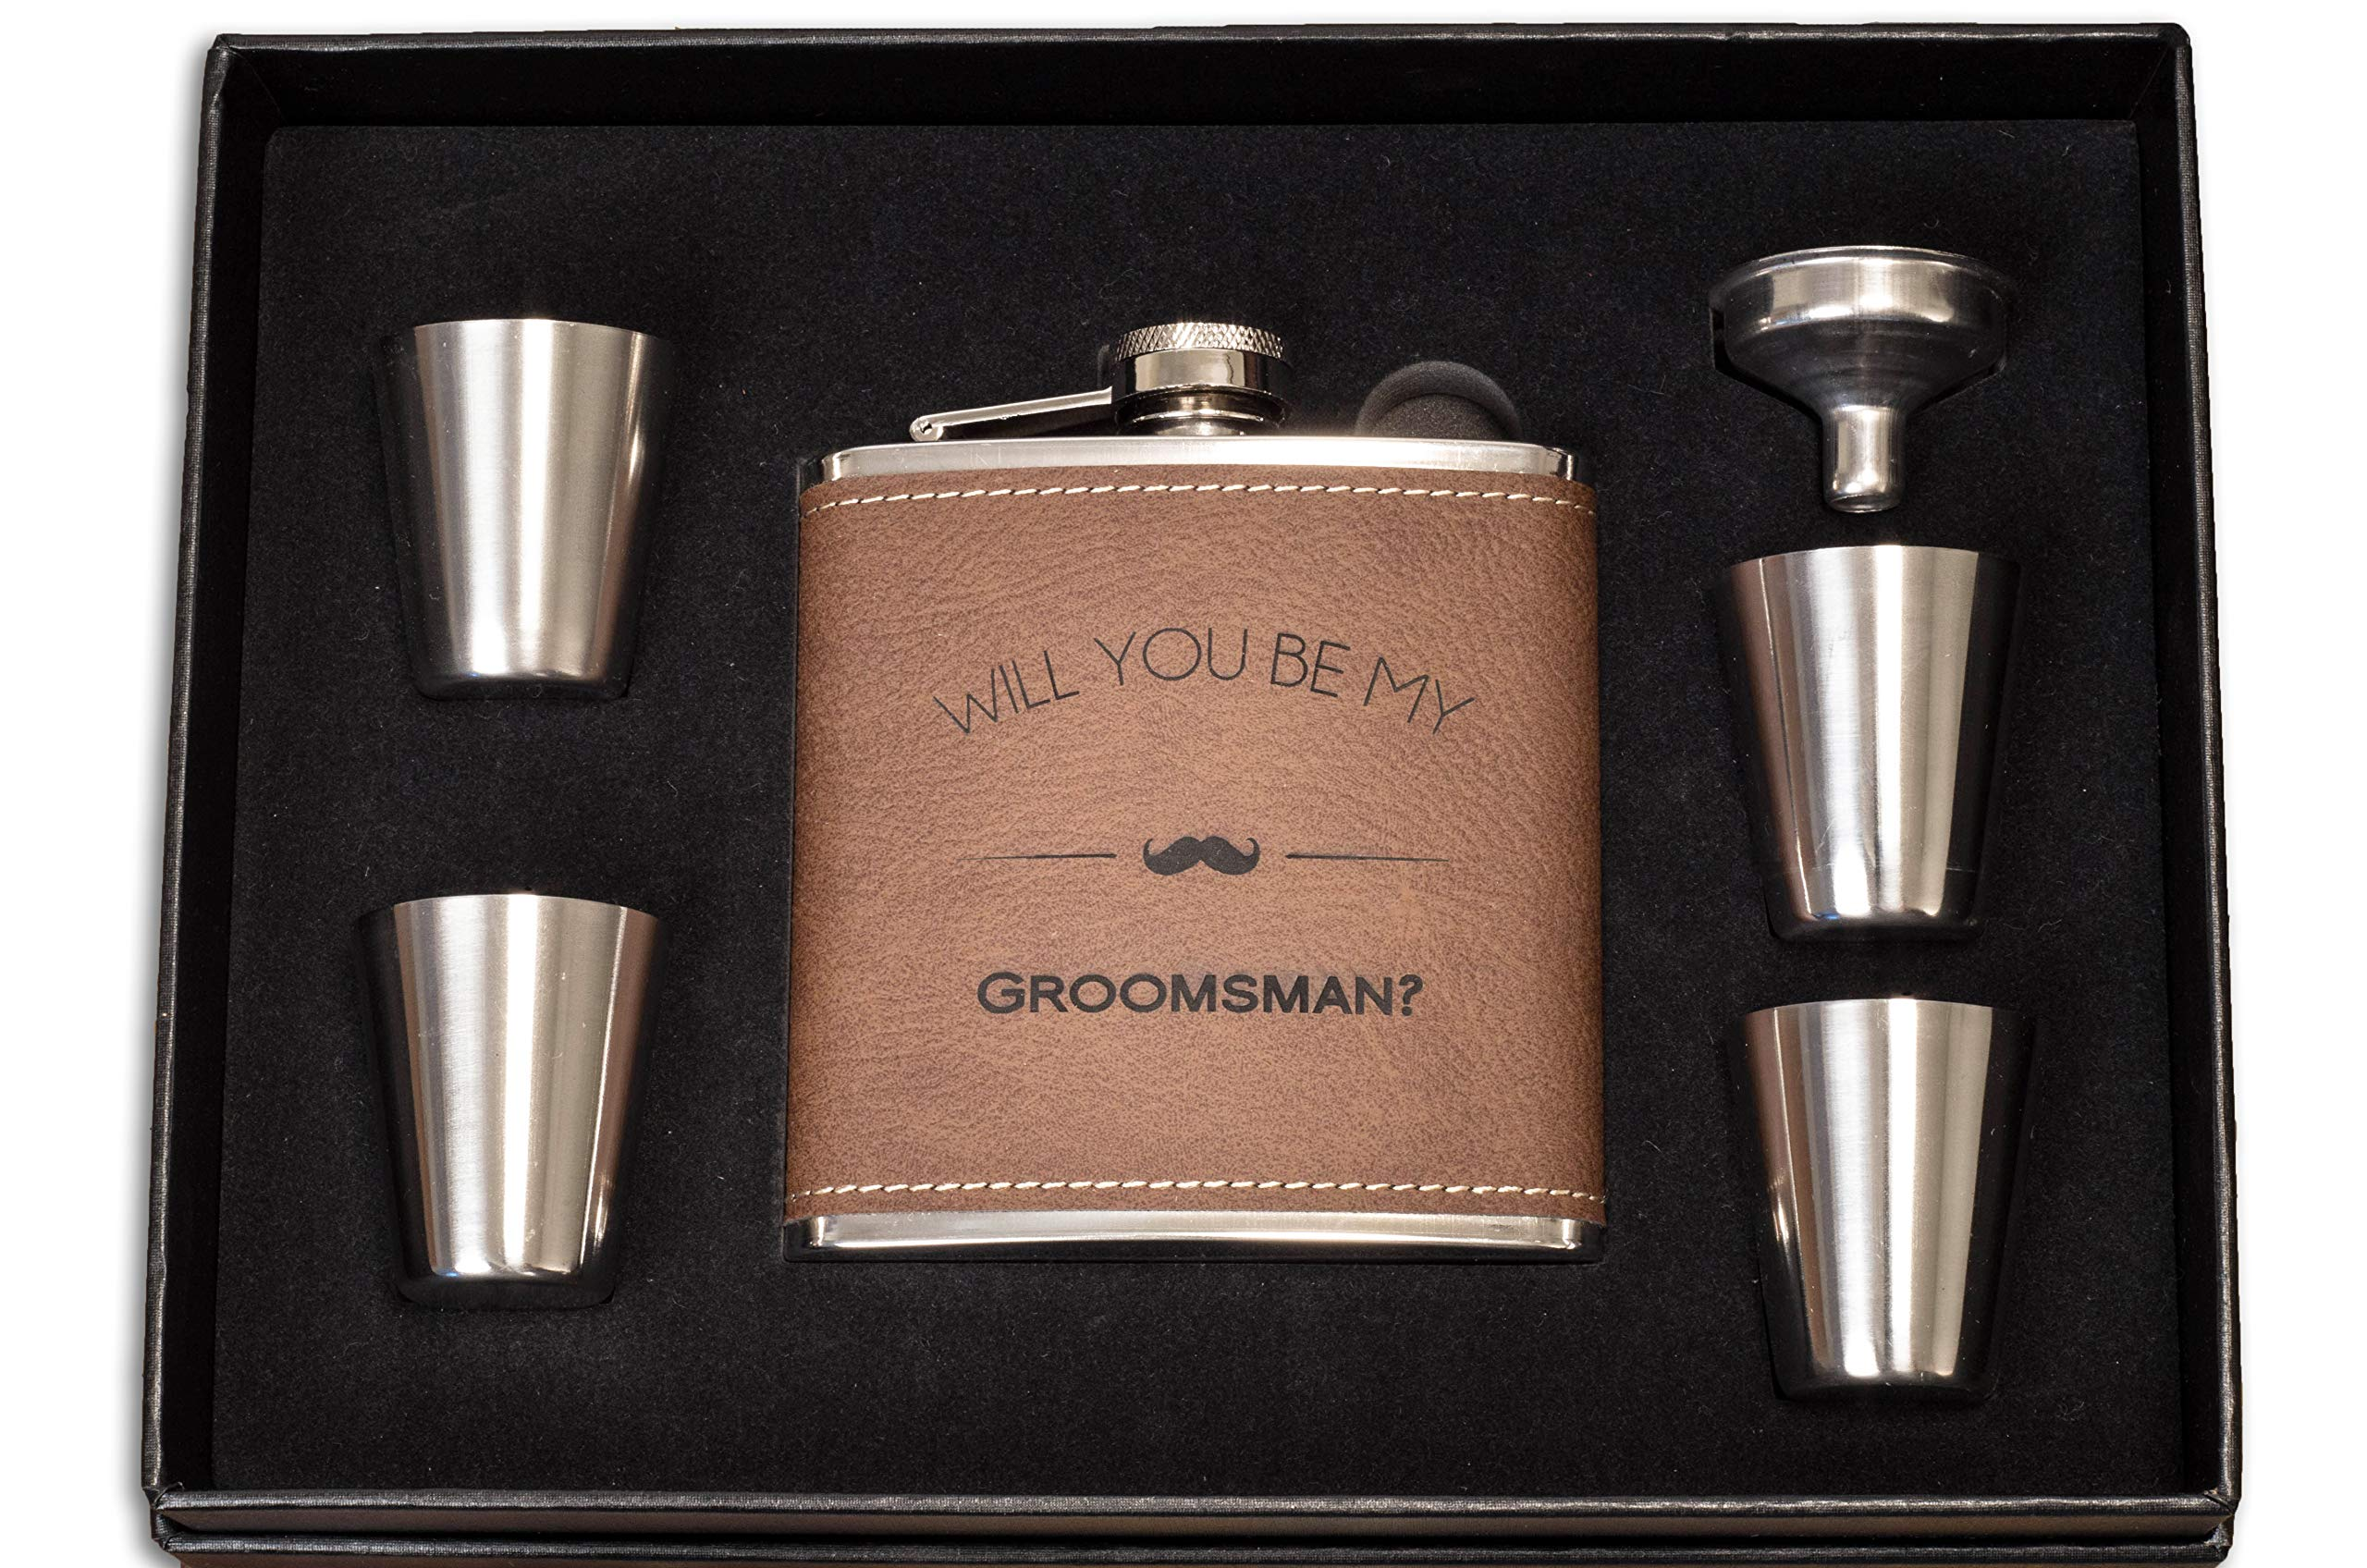 Will You Be My Groomsman Engraved Gift Flask - Asking Groomsmen Gifts- For Men, Brown Whiskey Flasks For Proposal - Extra Thick 5mil #304 Stainless Steel, Laser Engraved, Flask, Funnel & Shot Cups Set